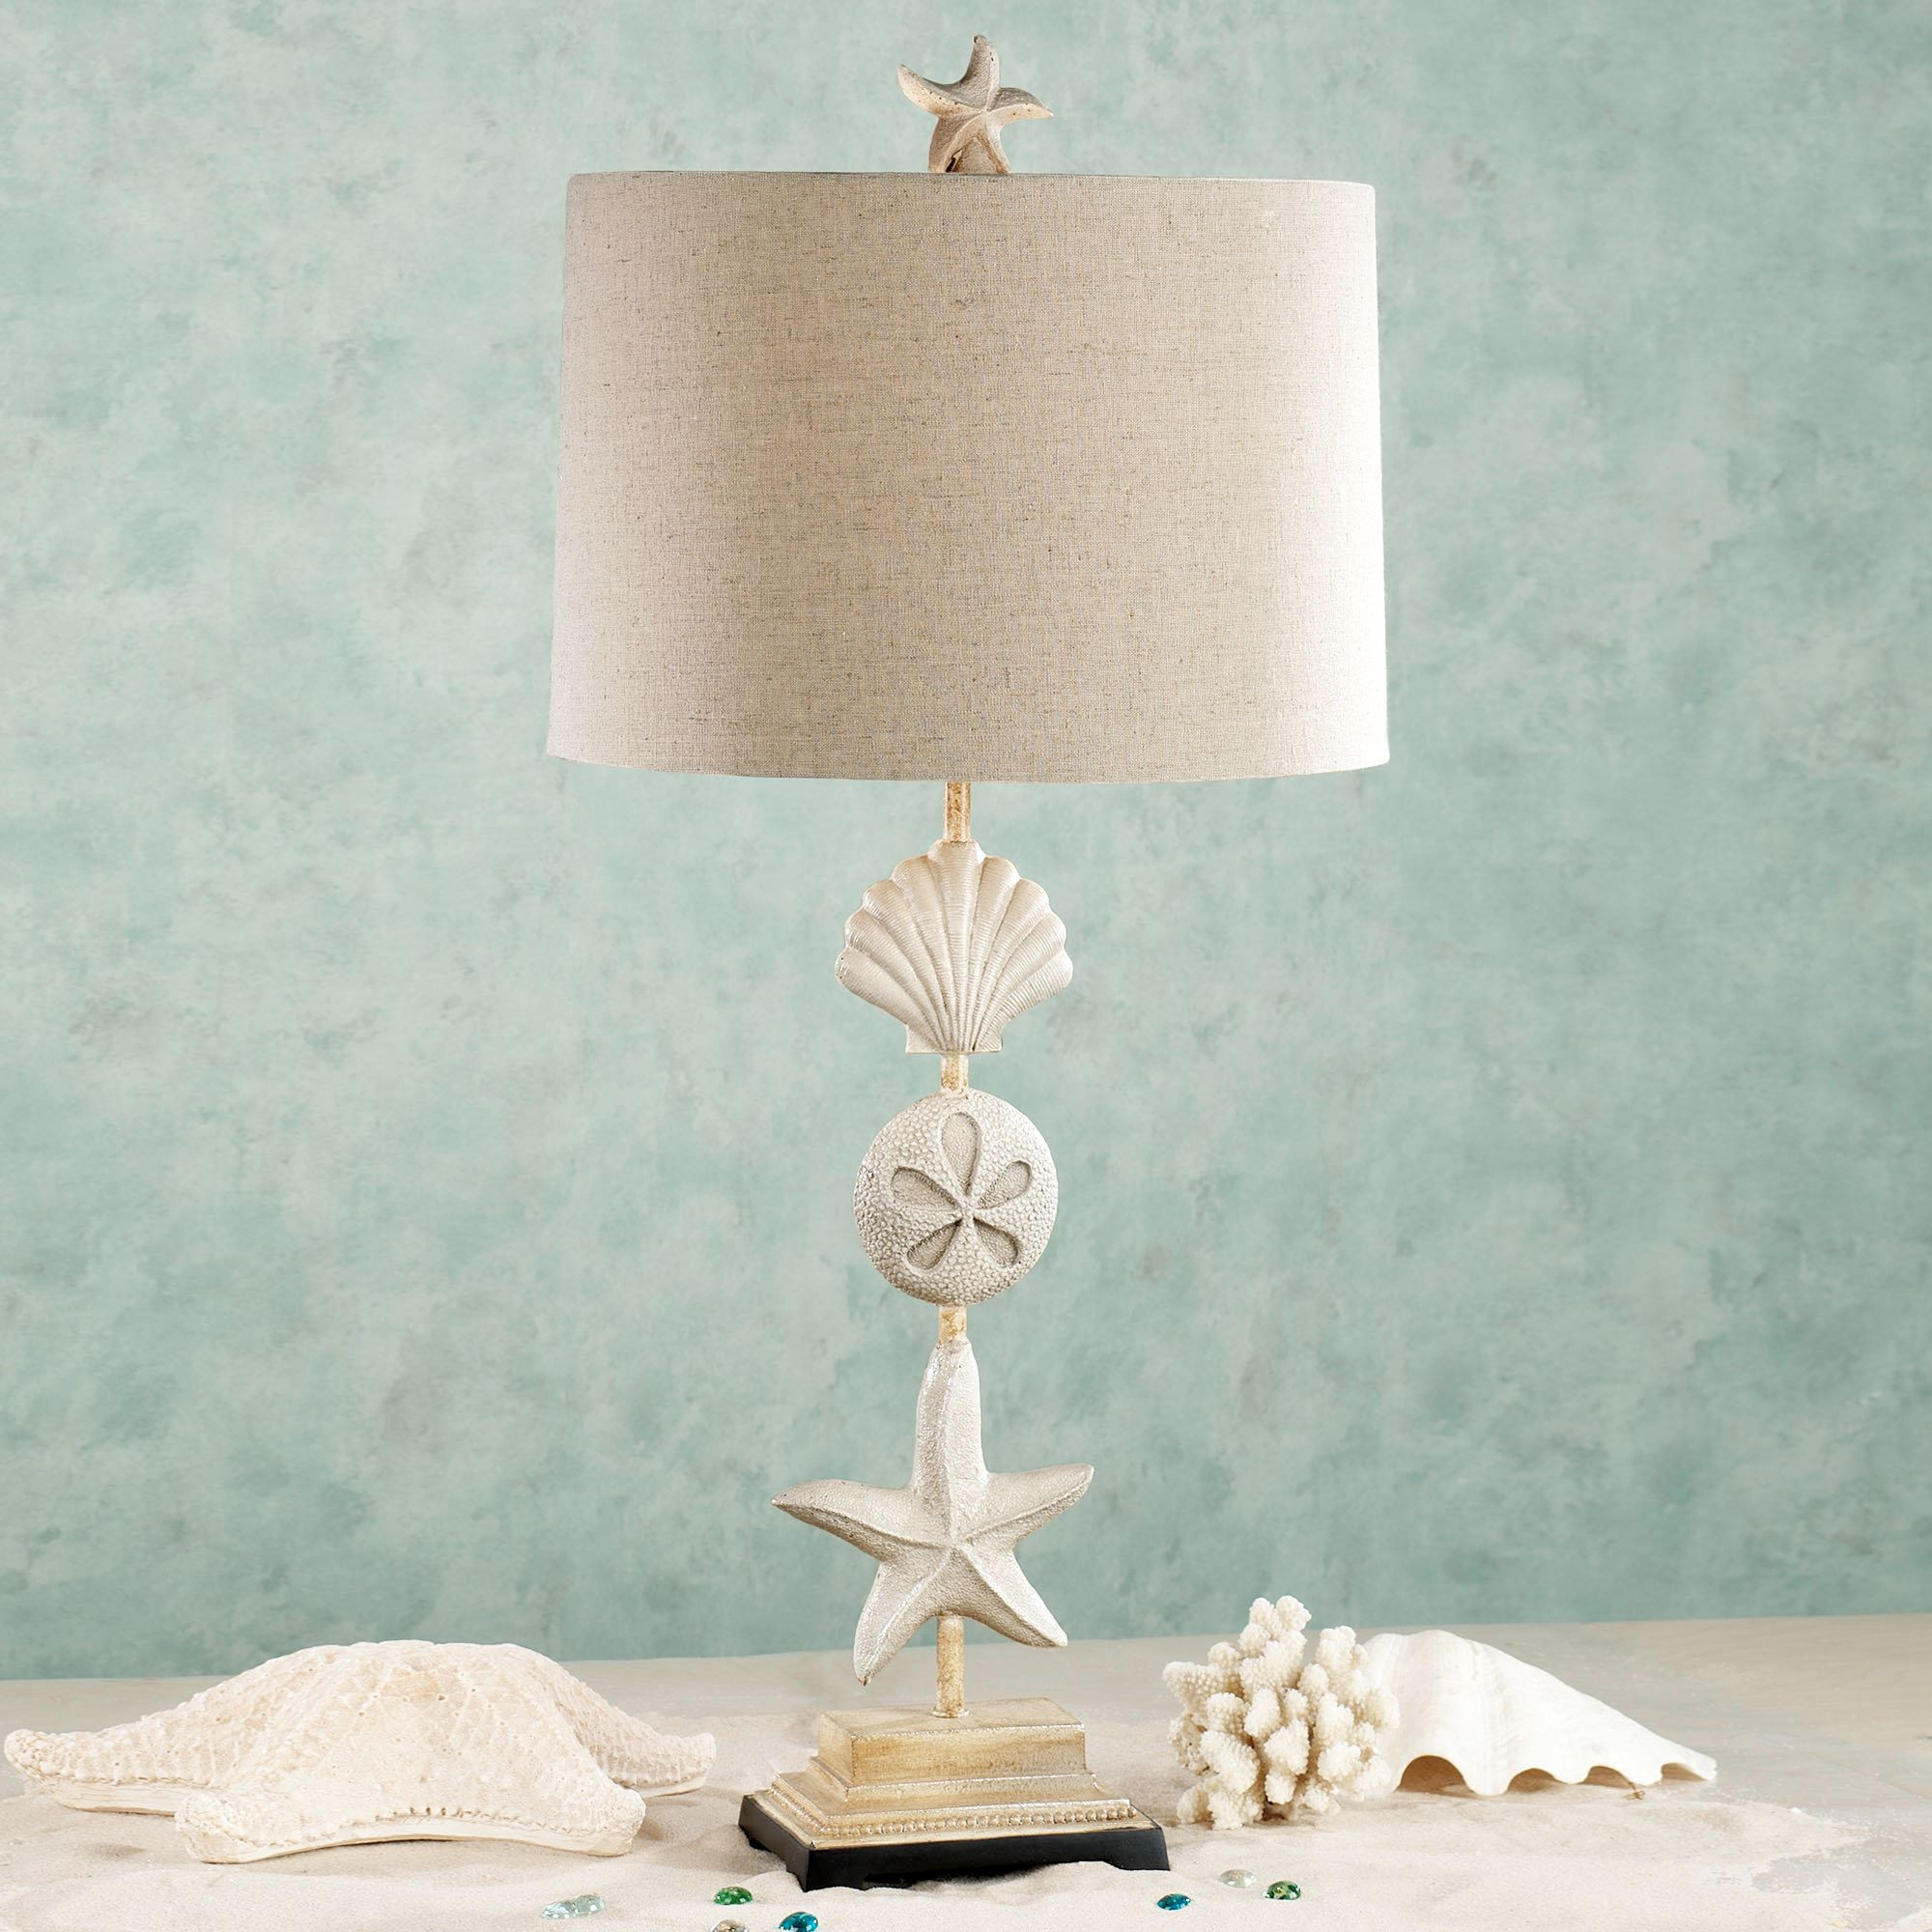 Coastal Lamps Cape Coral Coastal Table Lamp